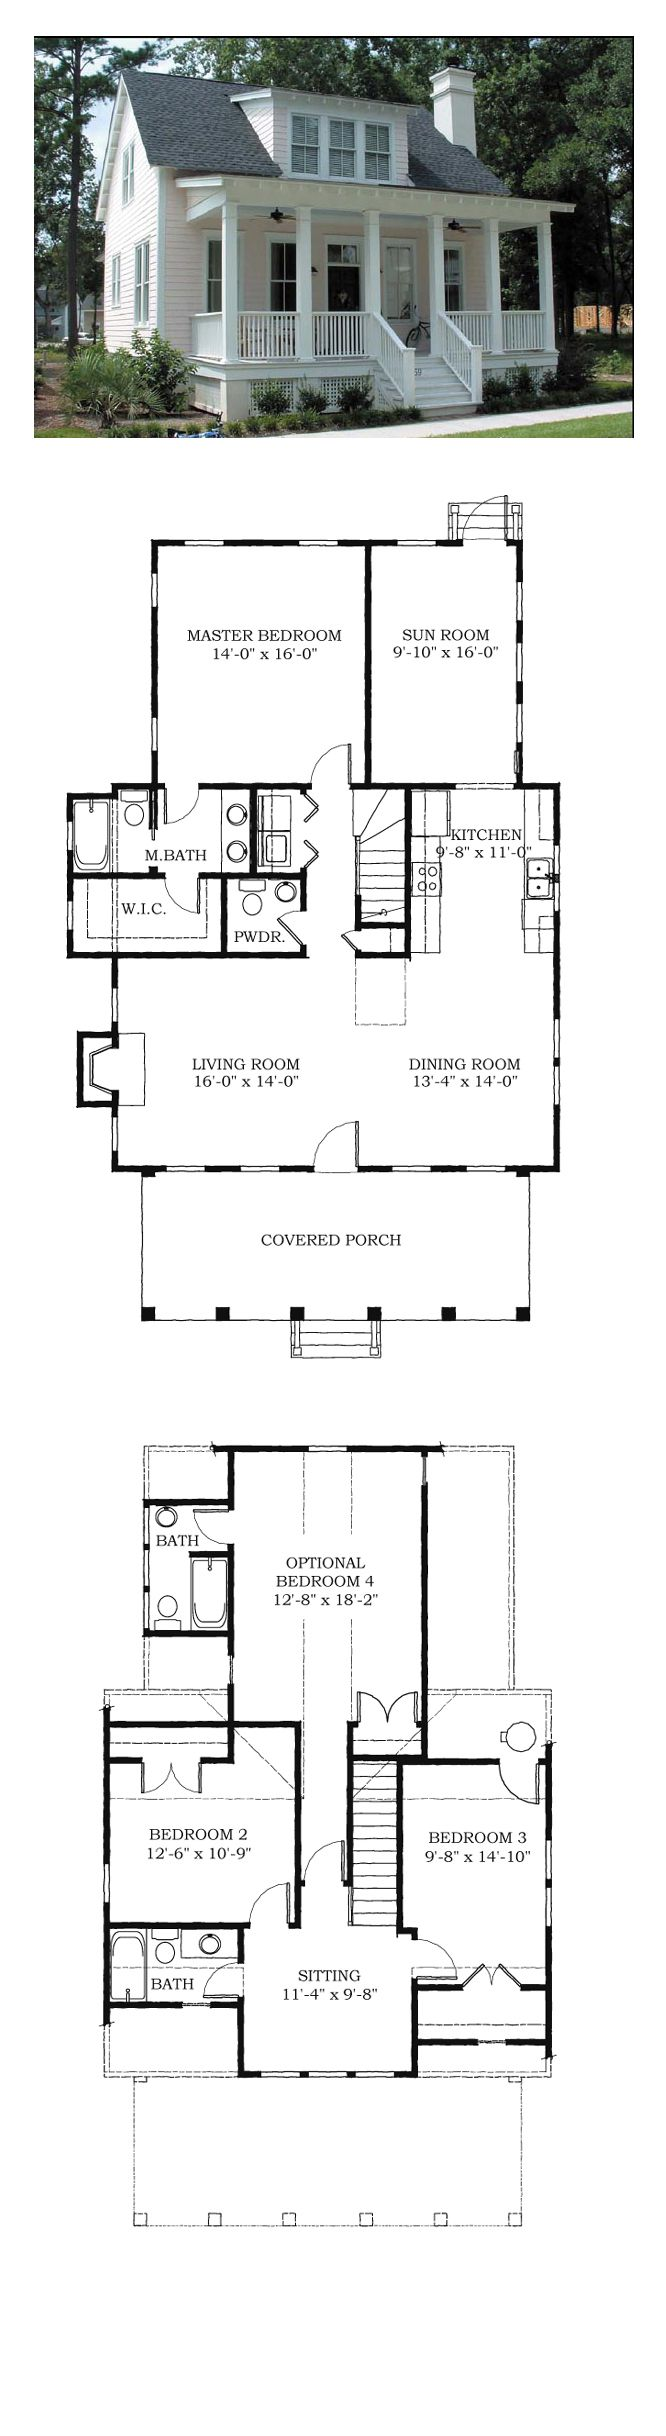 COOL House Plan ID: Chp 38703 | Total Living Area: 1783 Sq.